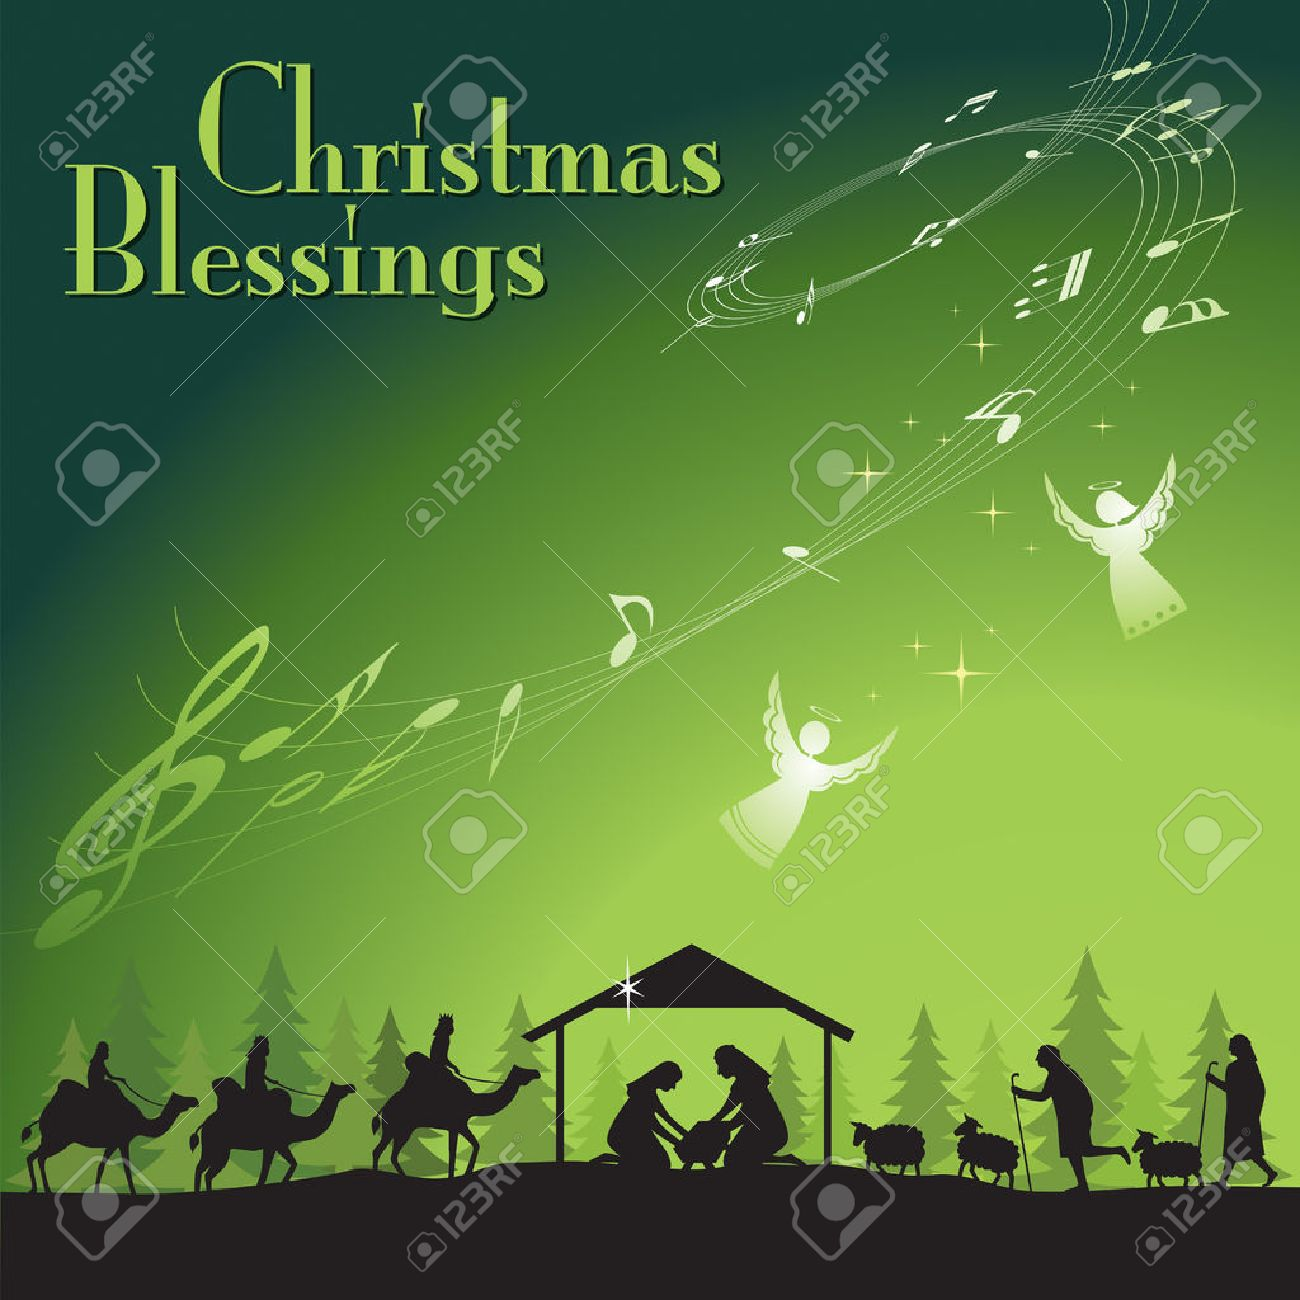 christmas blessing vector illustration the traditional christian